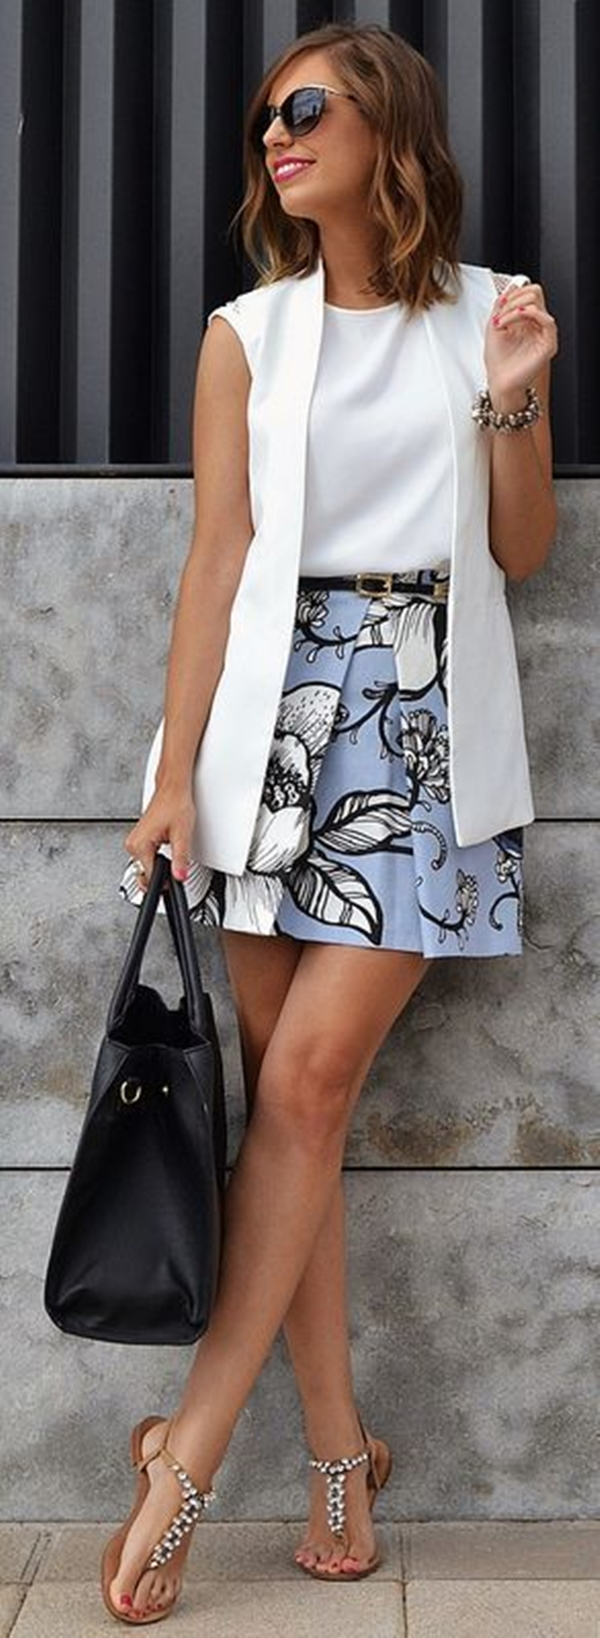 outfits-with-blazer-for-office-women-25